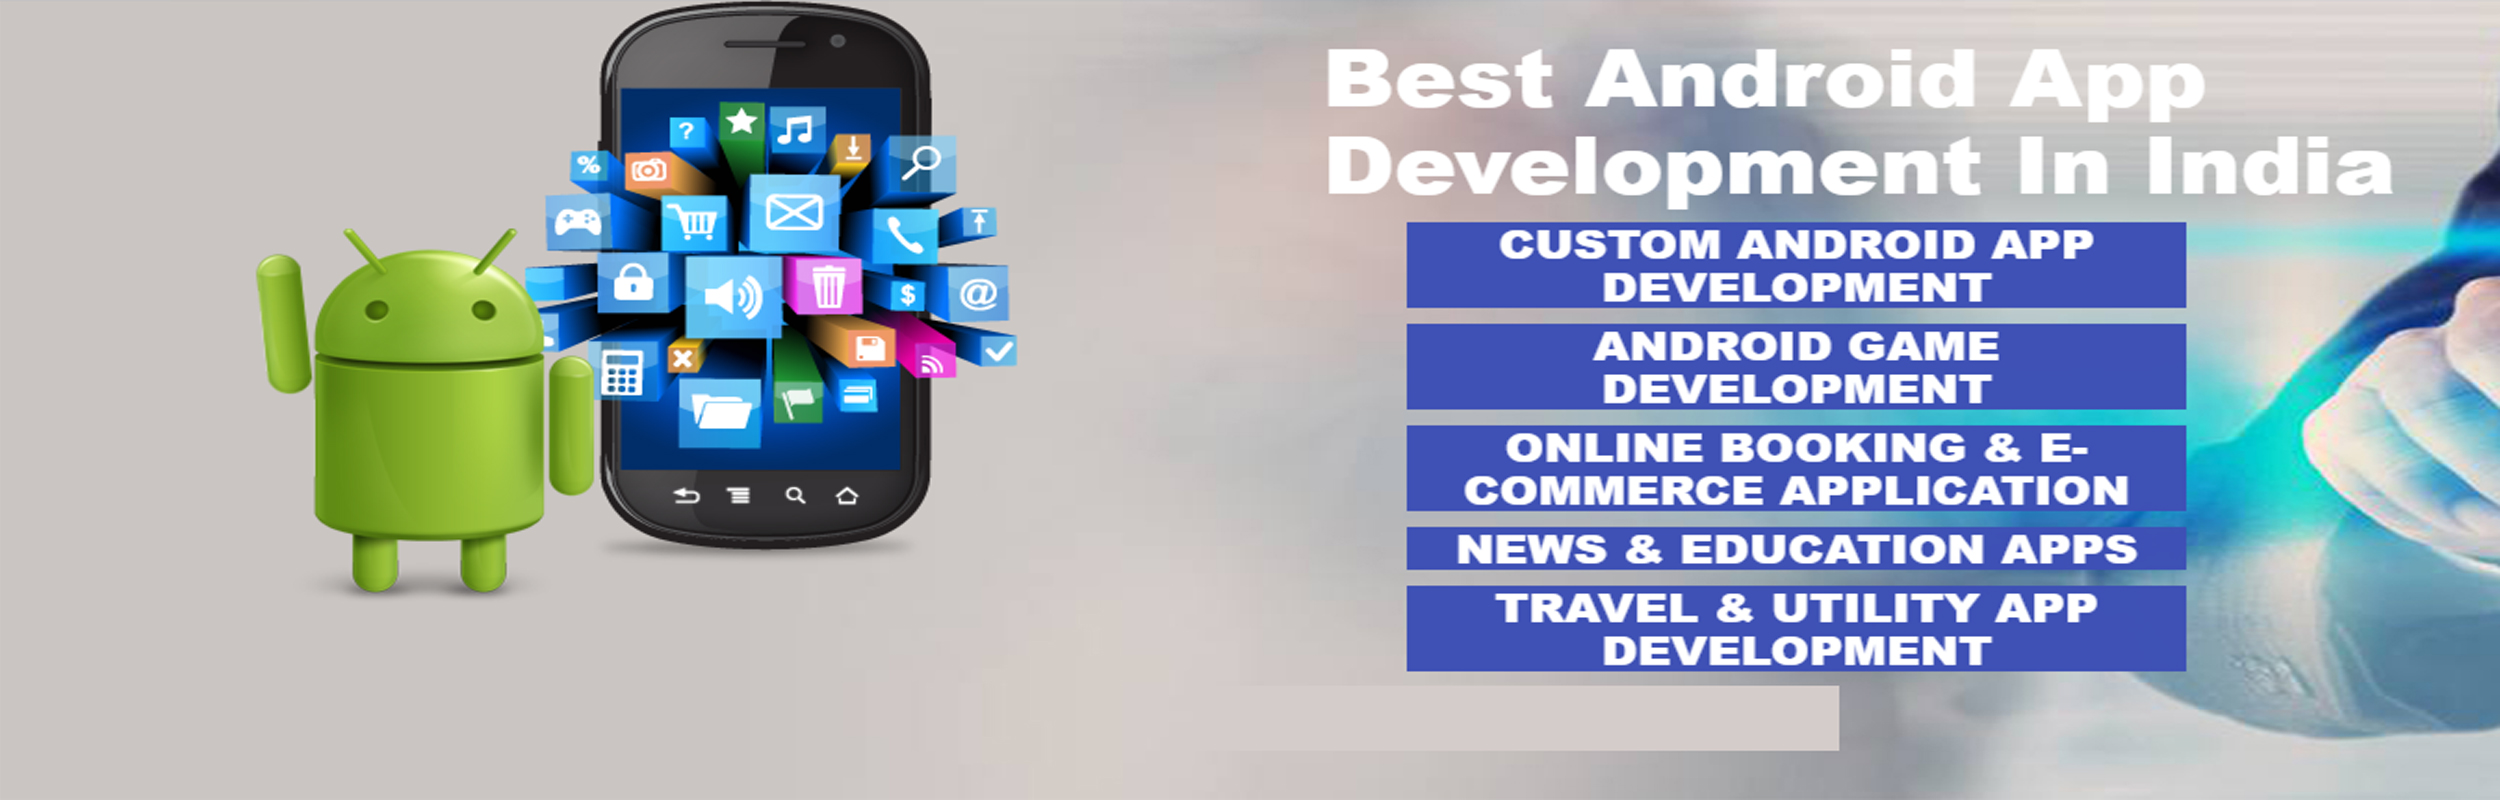 mobile app development company in bhopal india